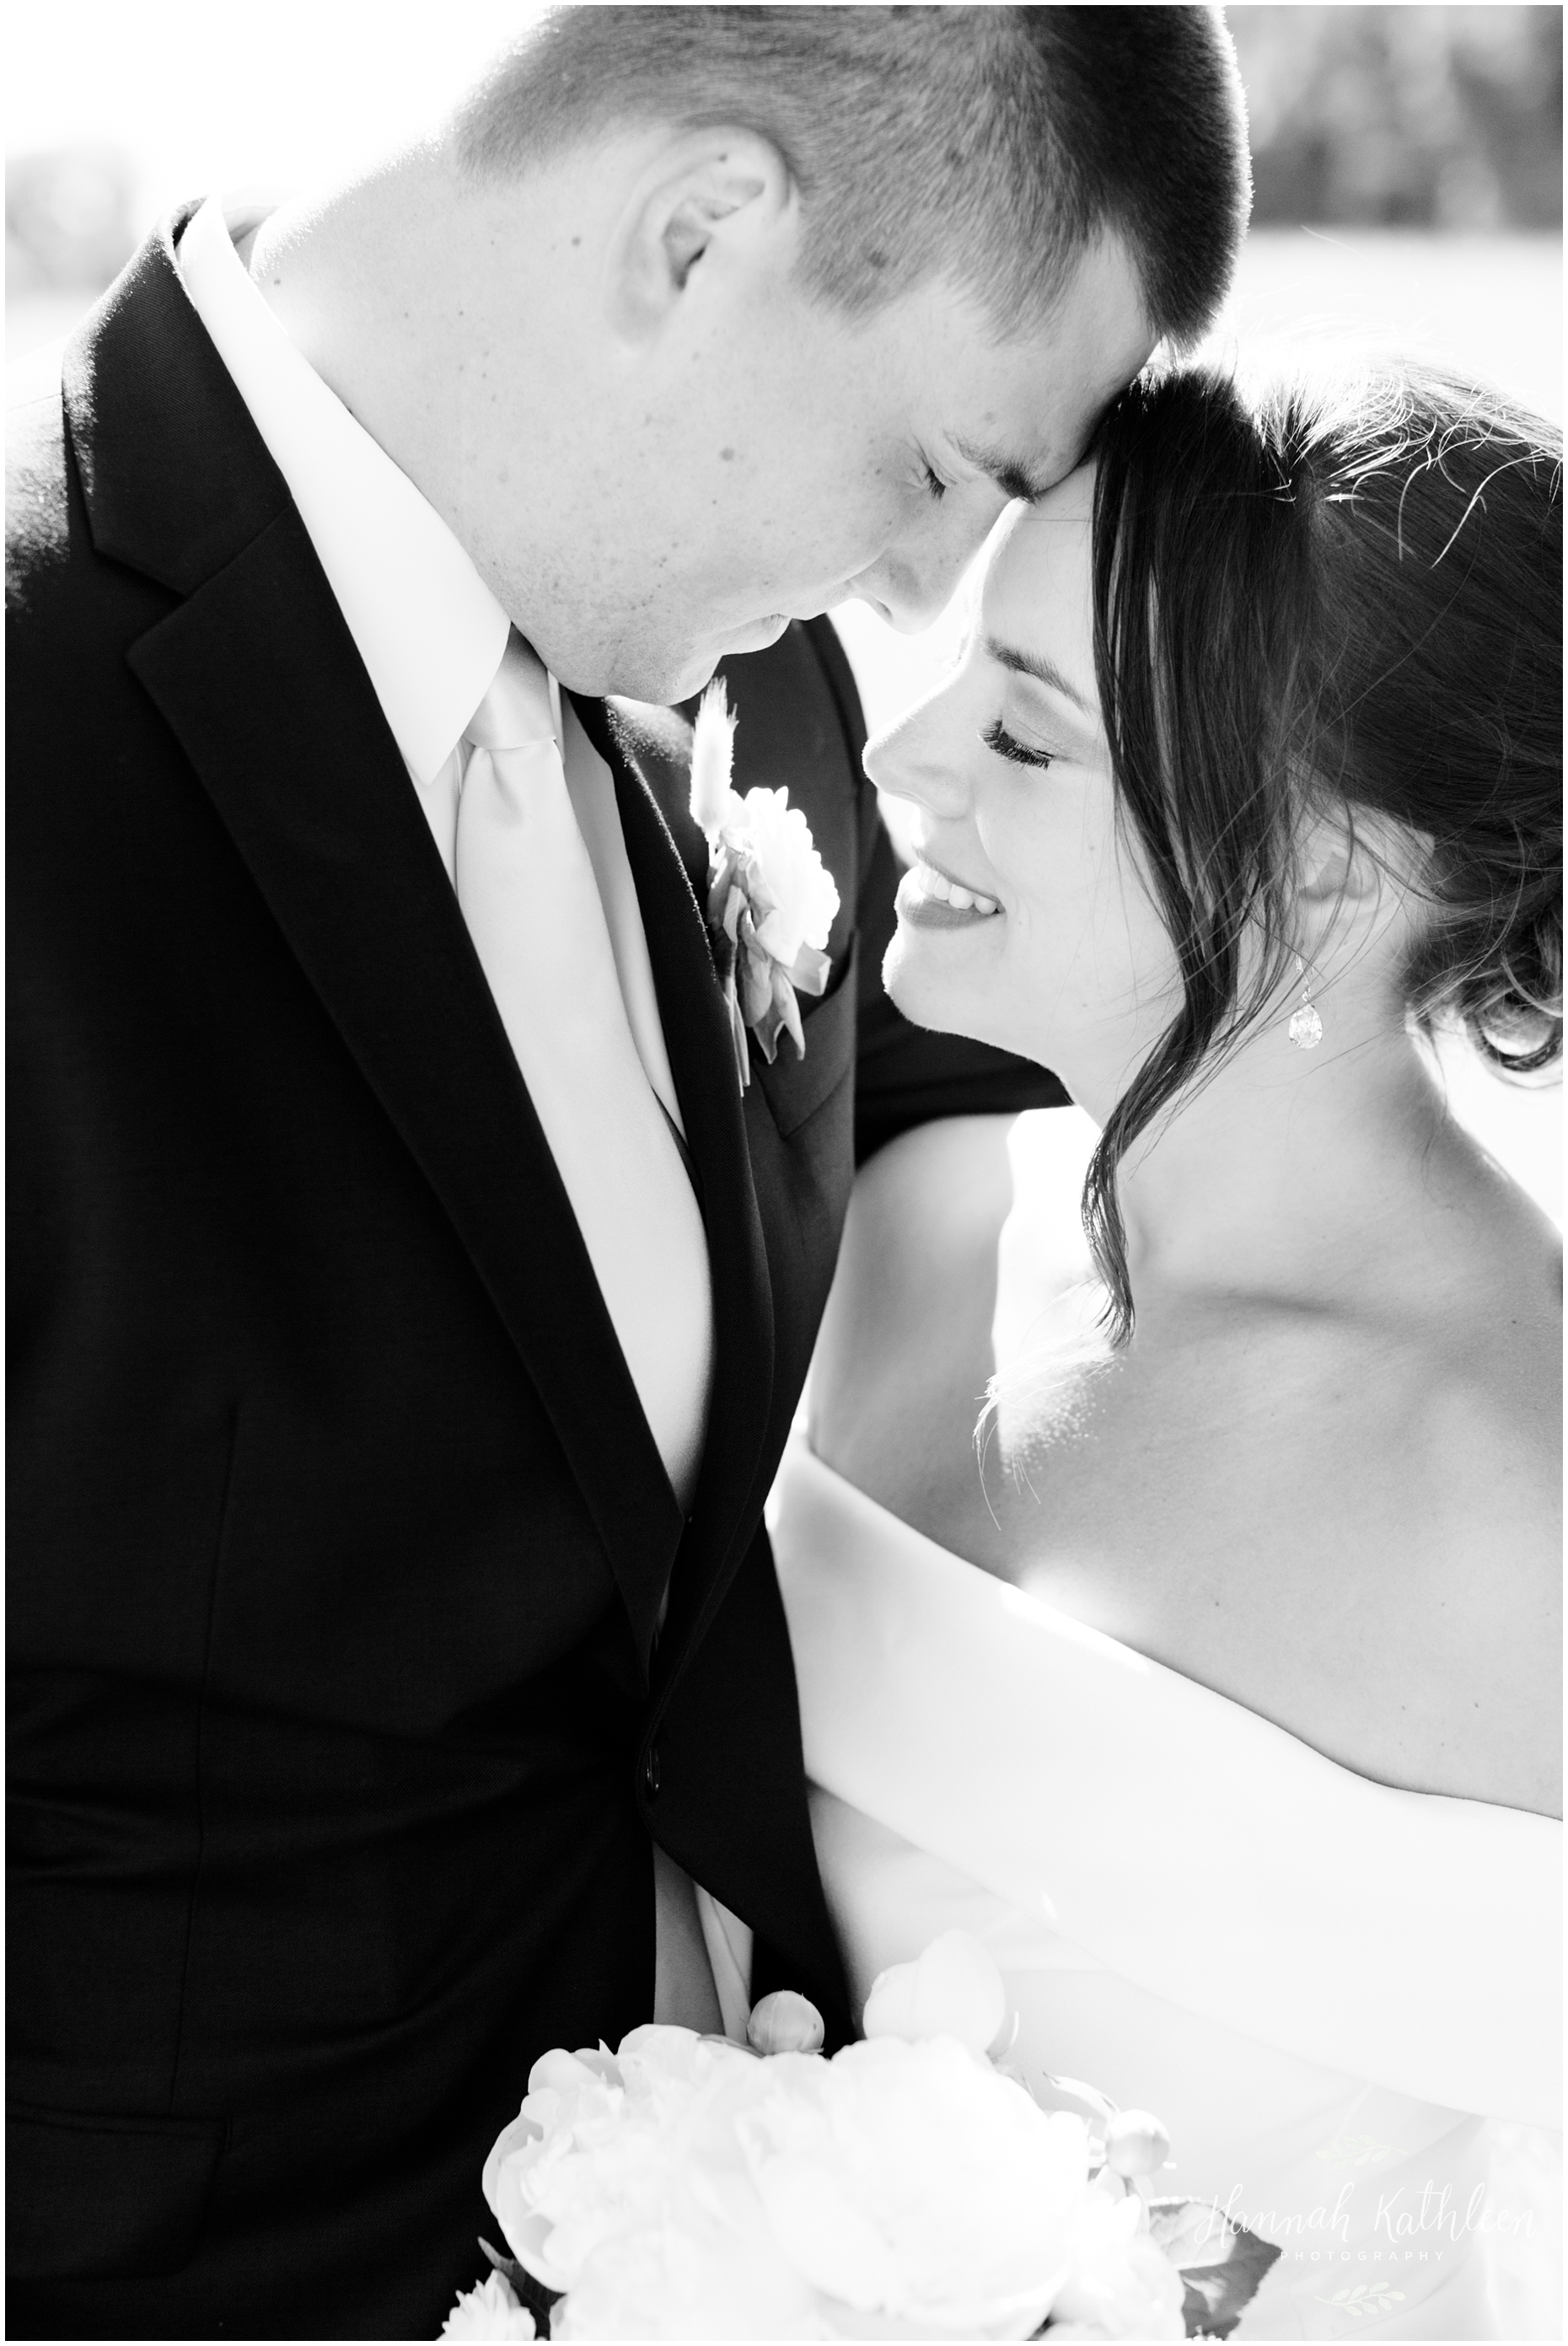 Andy_Margaret_Intimate_Wedding_Elopement_Lyndonville_Photography_Buffalo_NY